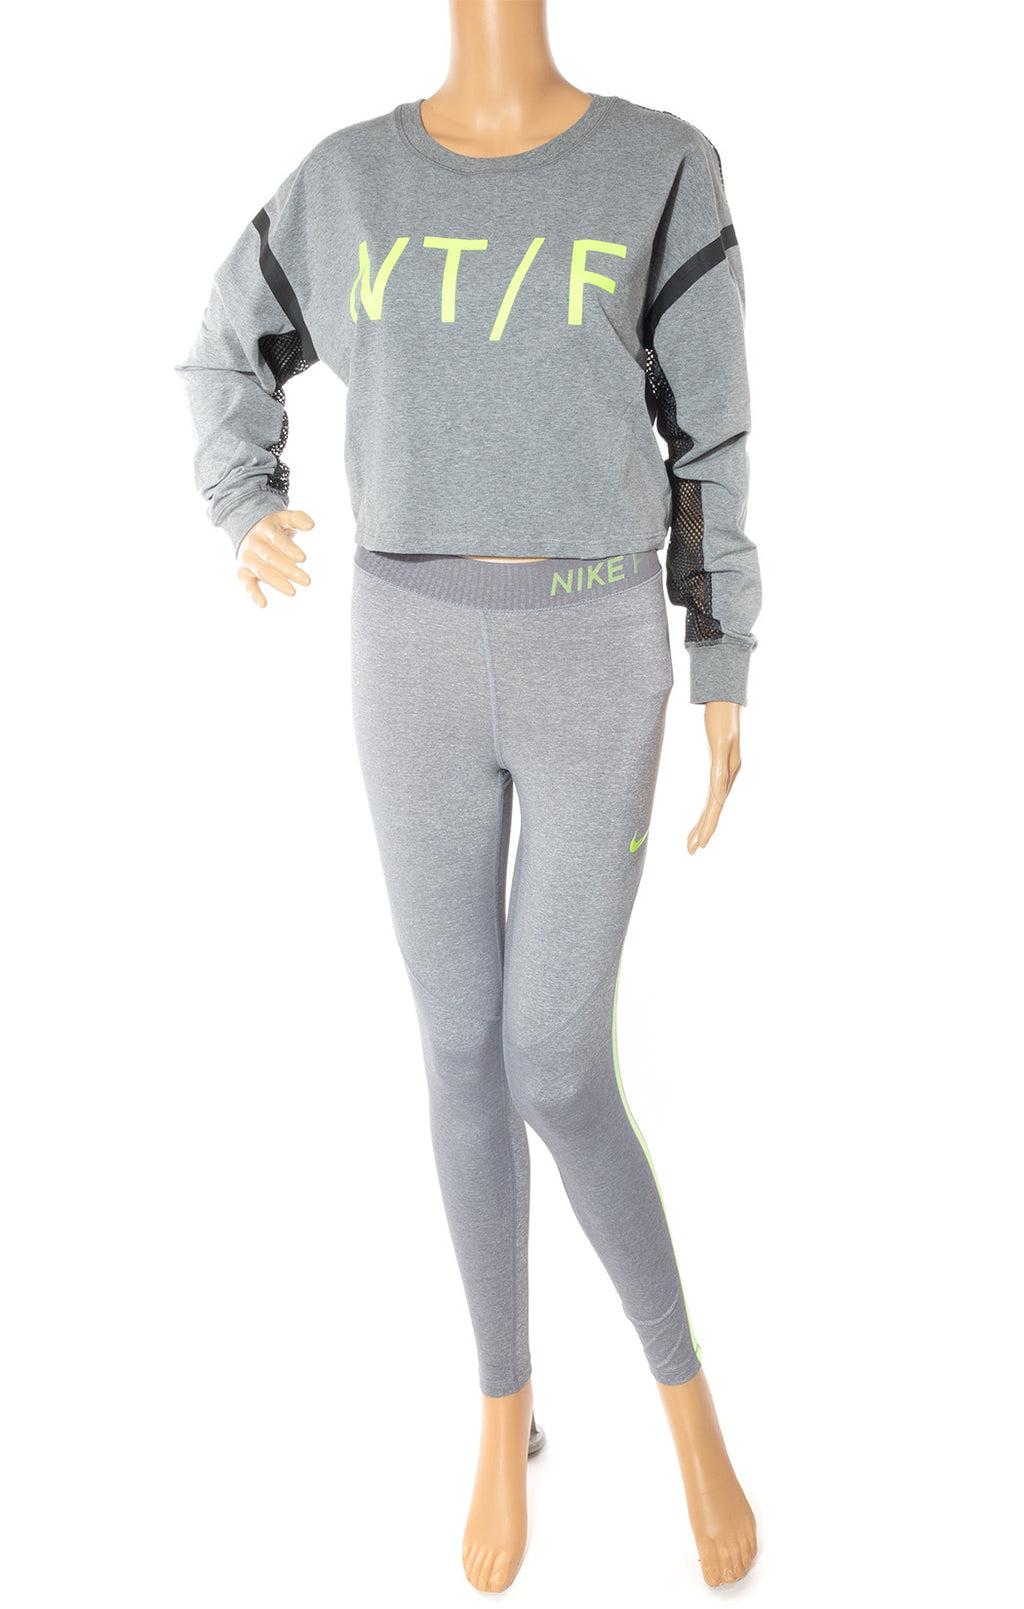 Front view of NIKE w/tags Top and matching leggings Size: Small